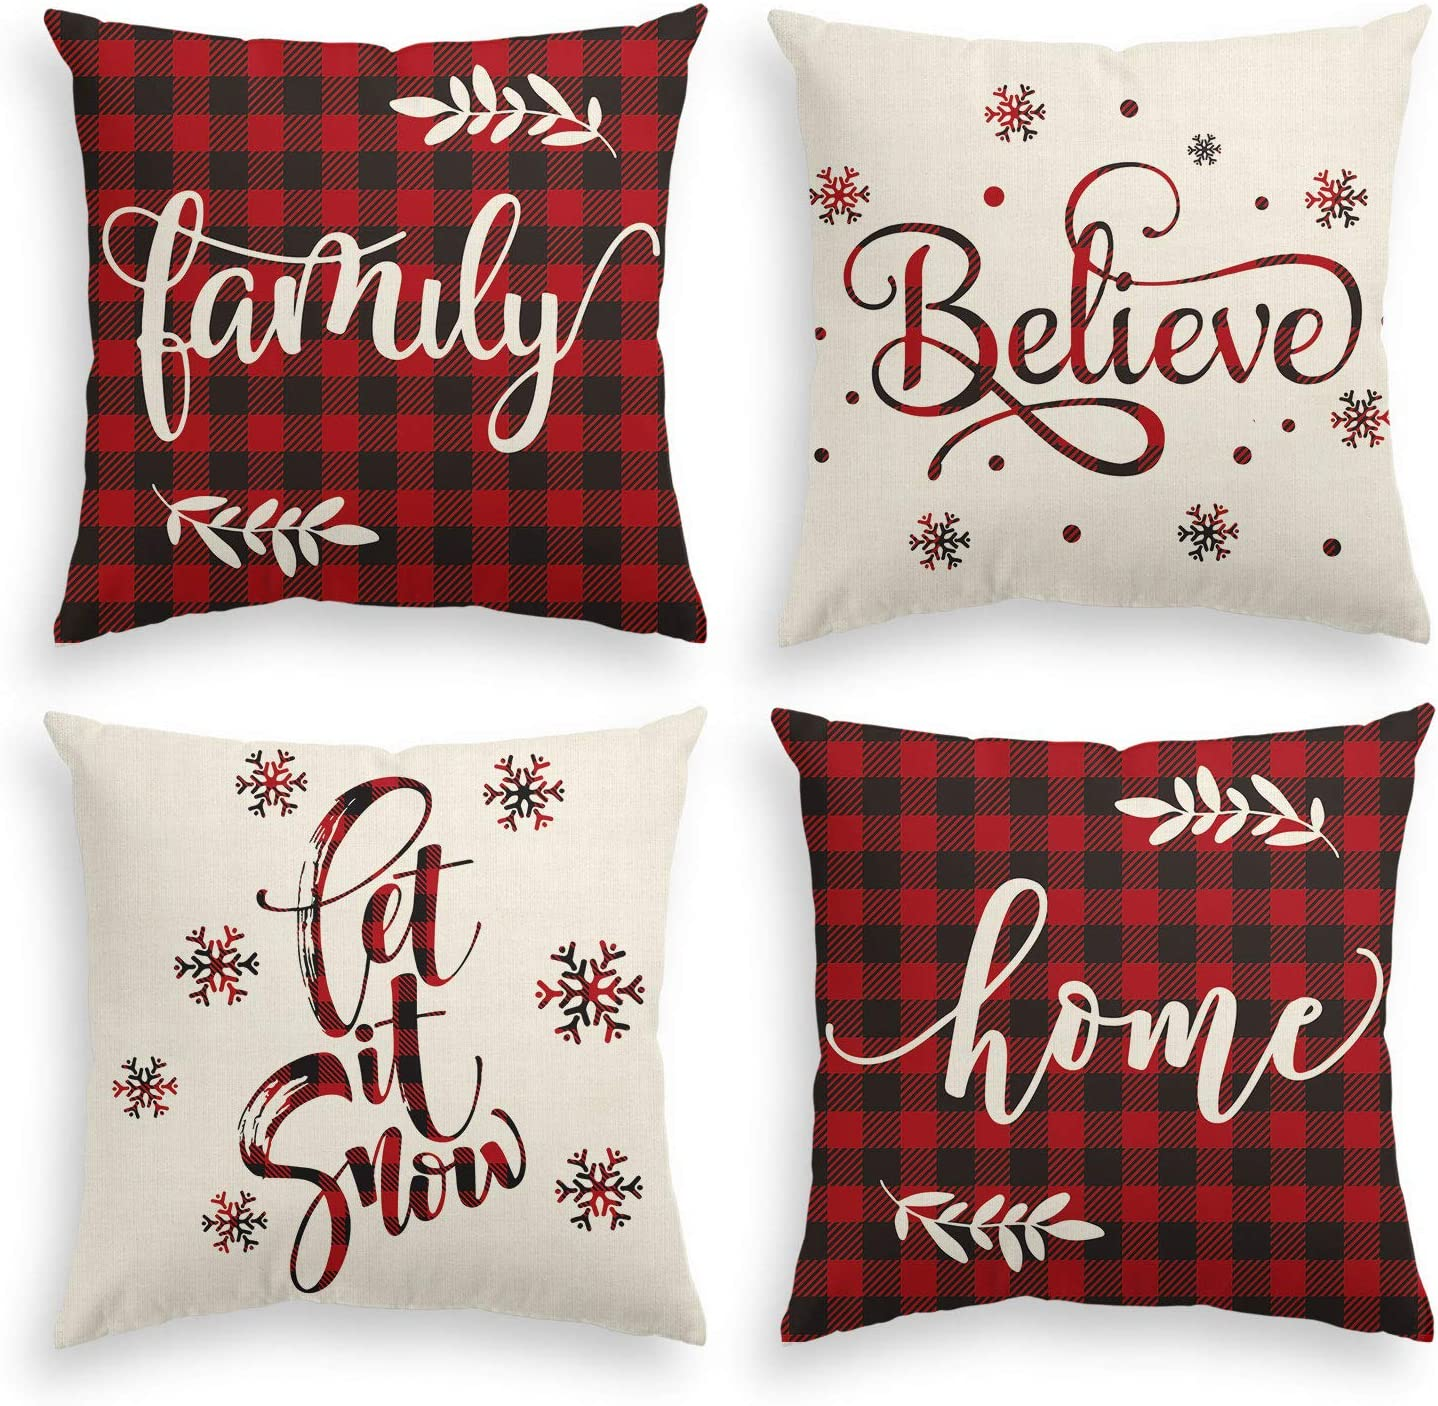 AVOIN Christmas Saying Buffalo Plaid Throw Pillow Cover, 20 x 20 Inch Winter Holiday Farmhouse Cushion Case for Sofa Couch Set of 4